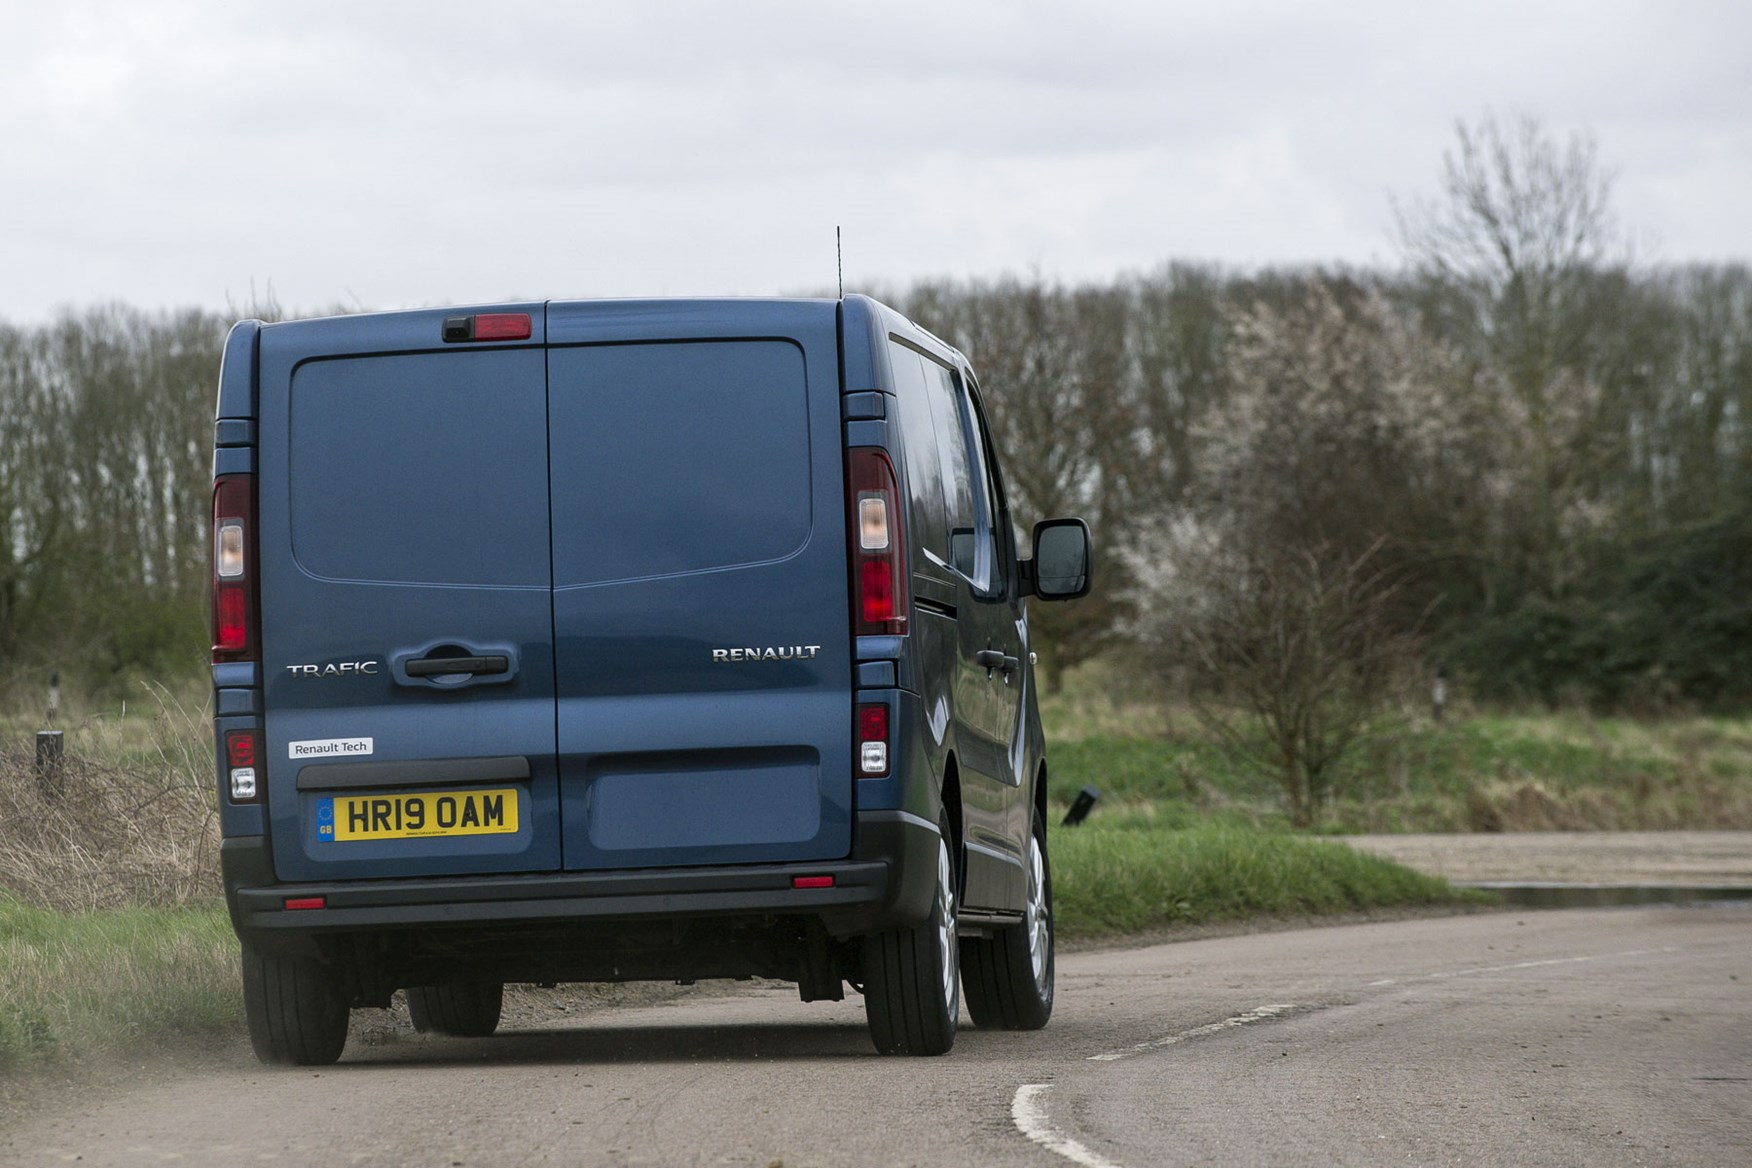 Renault trafic review - facelift, rear view, driving, 2020, blue